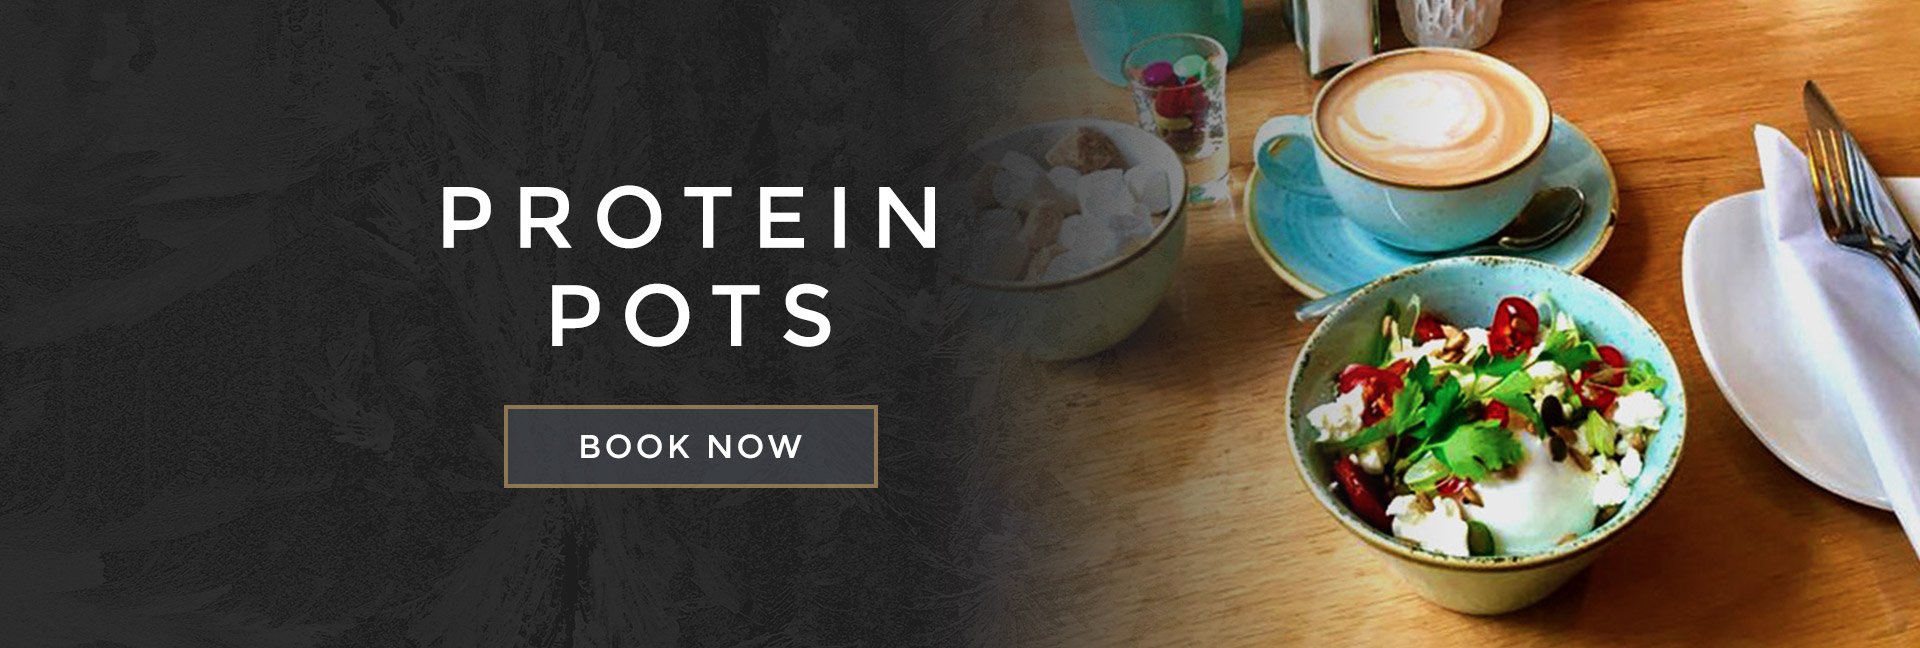 Protein pots at All Bar One Byward Street - Book your table